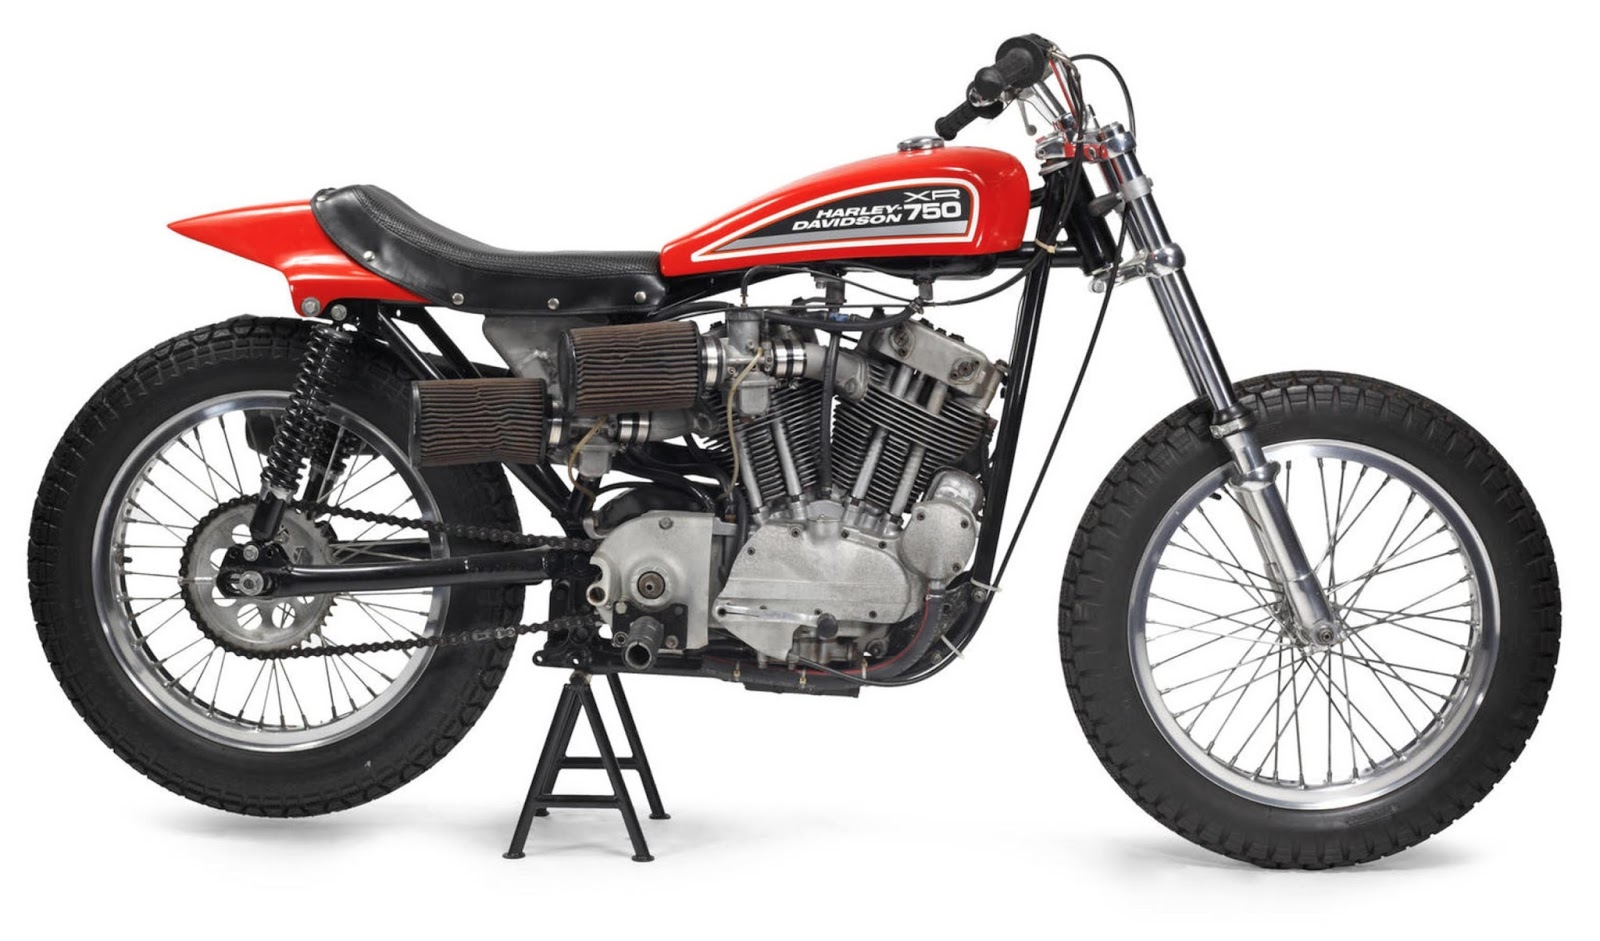 A Brief History Of The Harley Davidson Xr 750